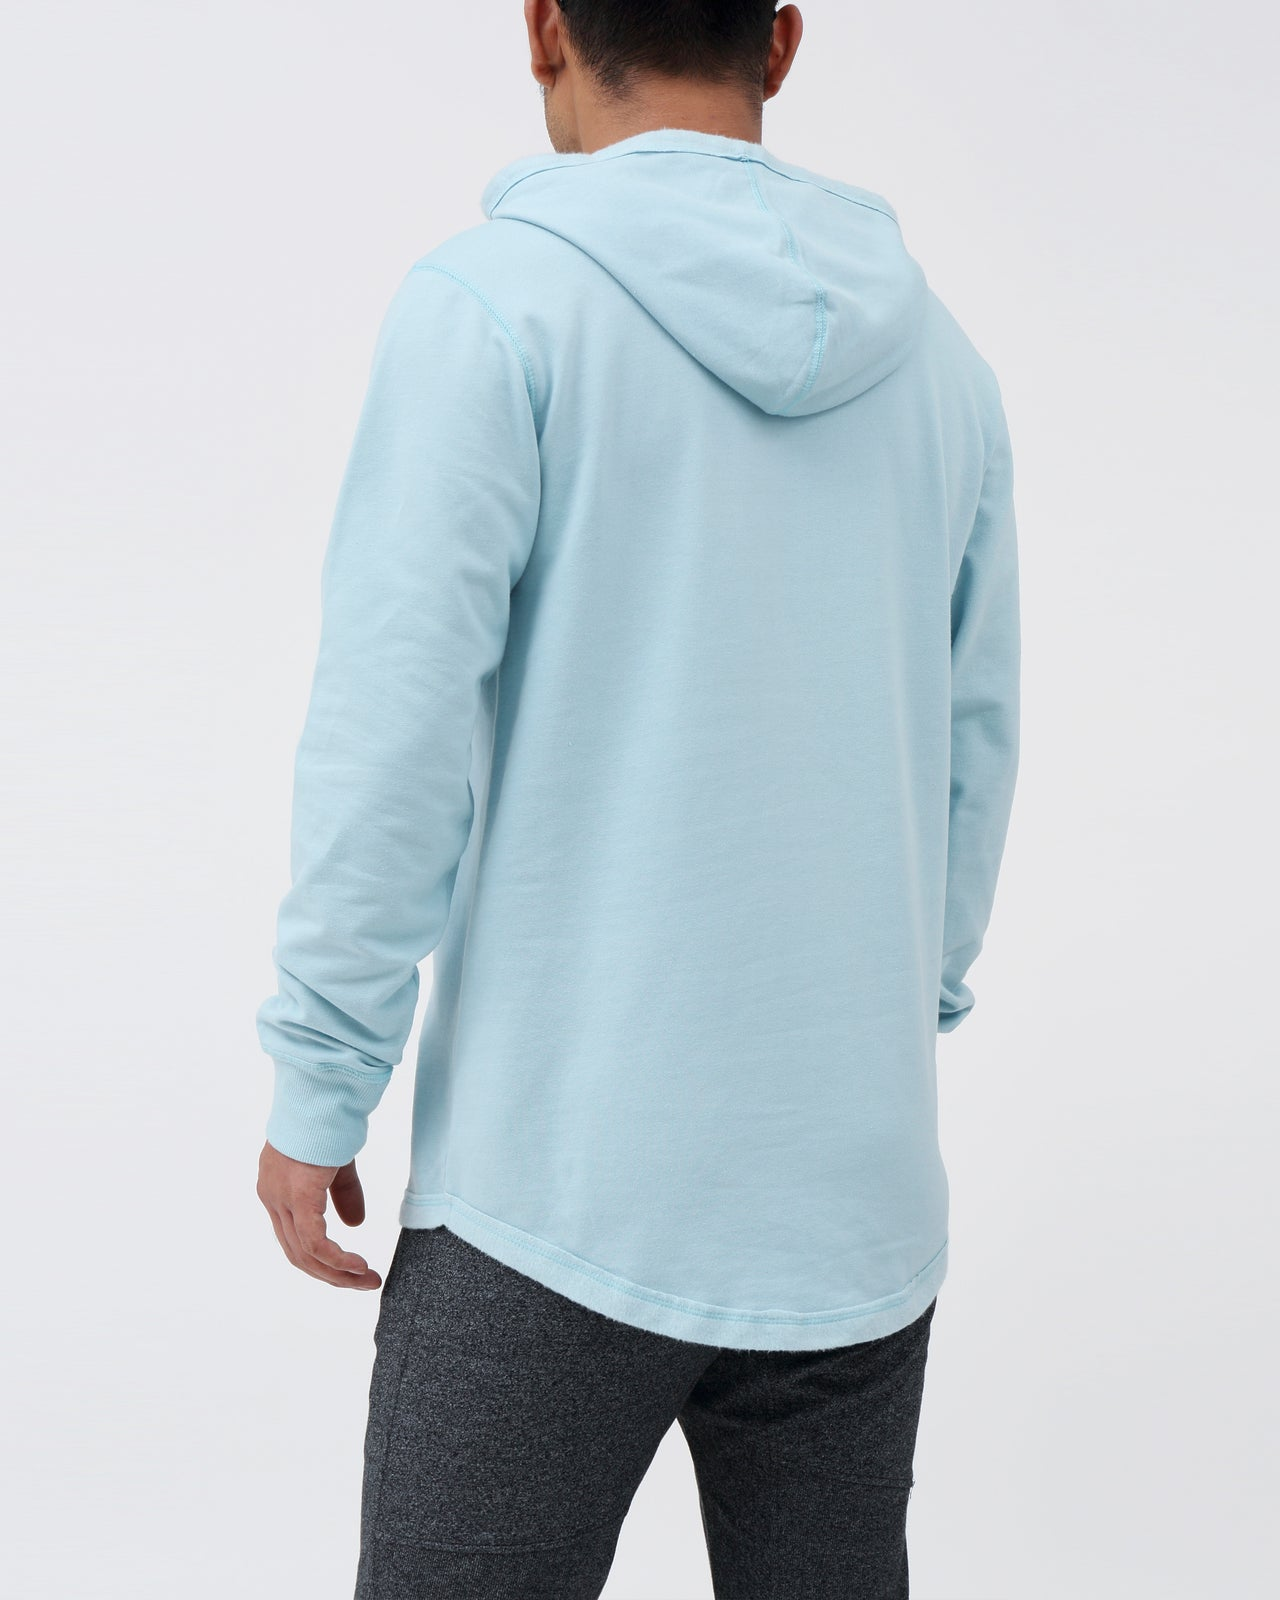 Patch Hoodie - Color: Blue Topaz | Blue